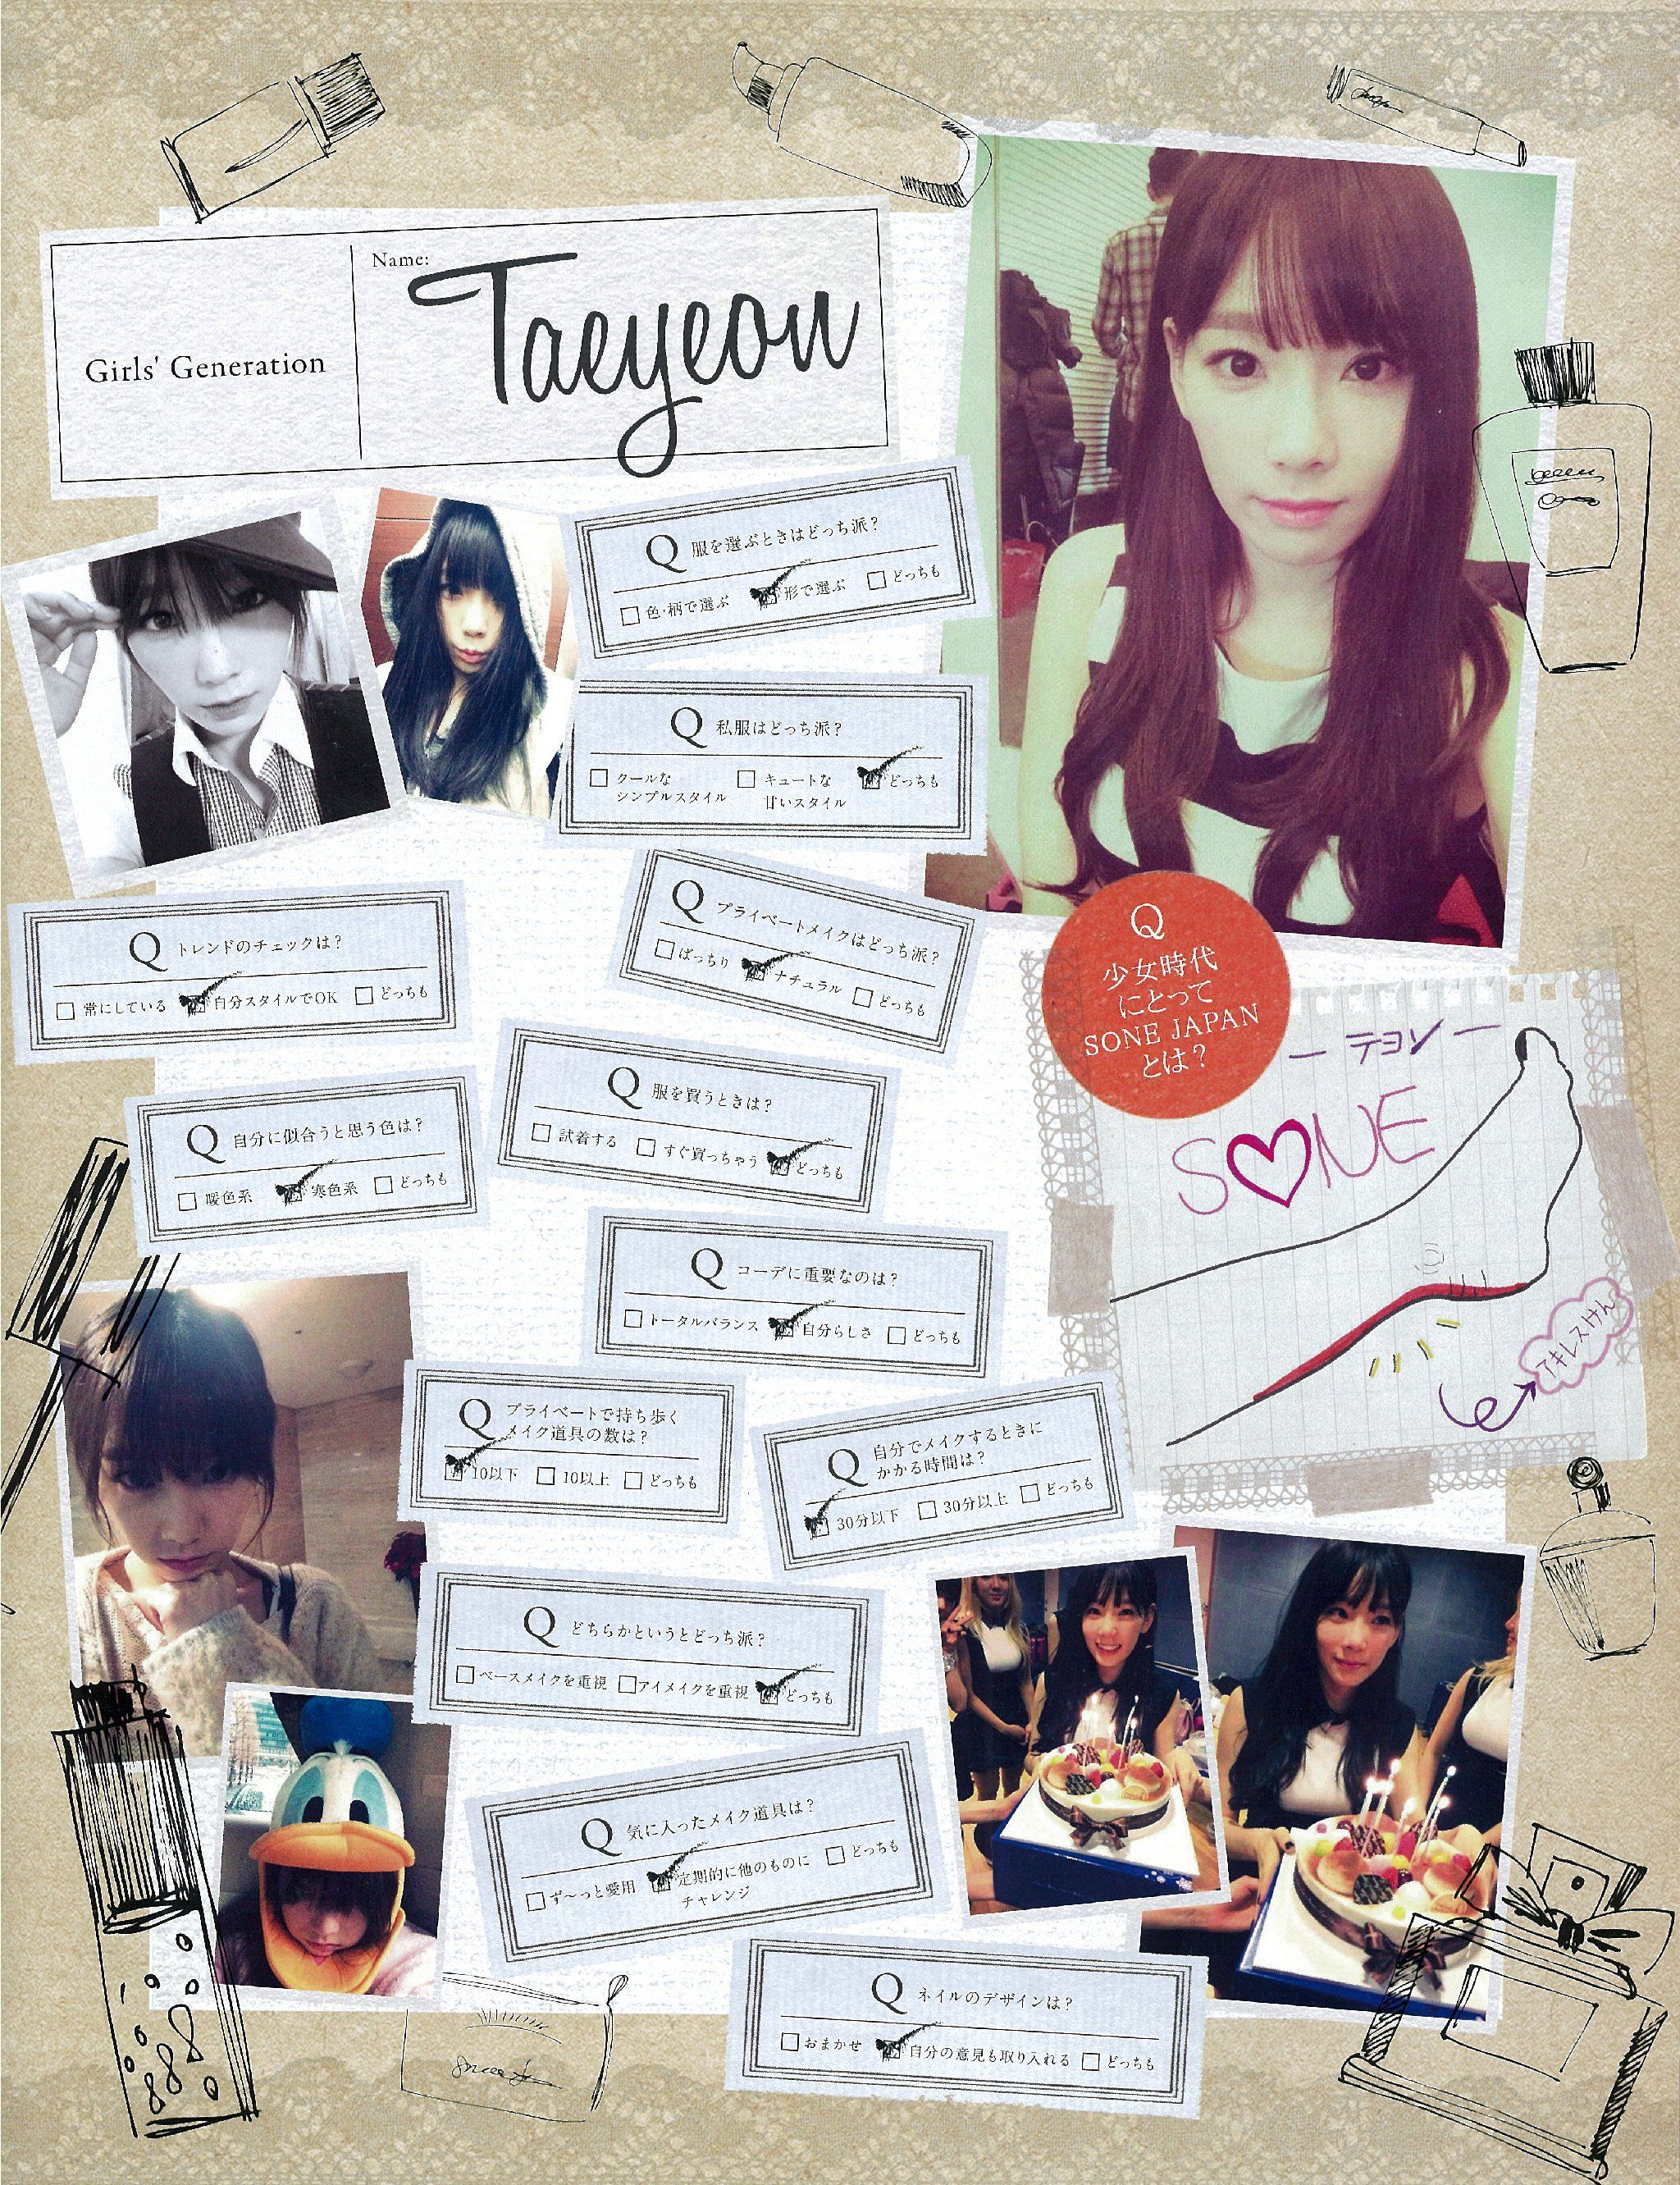 Sone snsd quotes o - Snsd Girls Generation Taeyeon Sone Note Vol 3